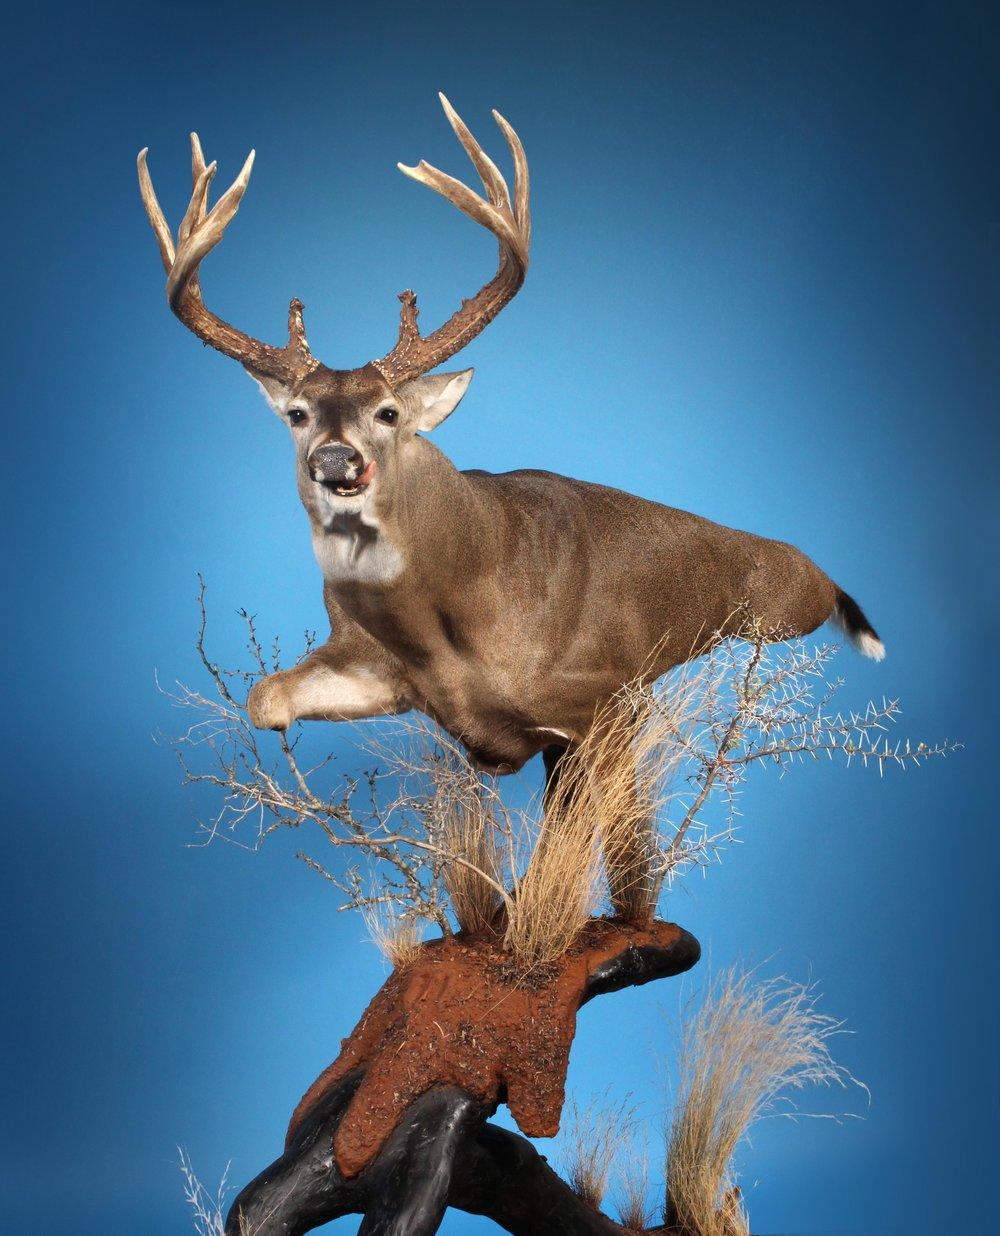 """""""Fair Chase""""James Newport 2018 - James' 2018 competition piece earns several awards.Texas State ChampionOklahoma State ChampionLouisiana State ChampionUnited Taxidermy Whitetail ChampionWasco Award - BestAritsan AwardPeople's Choice"""